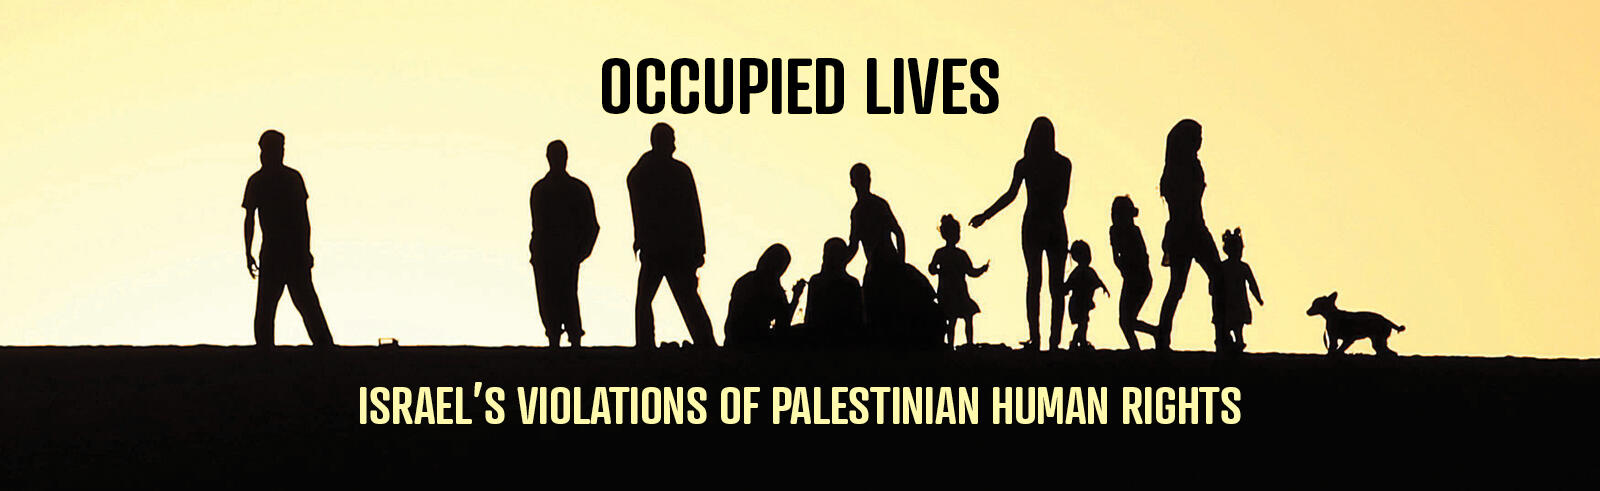 occupied-lives-israels-violations-palestinian-human-rights